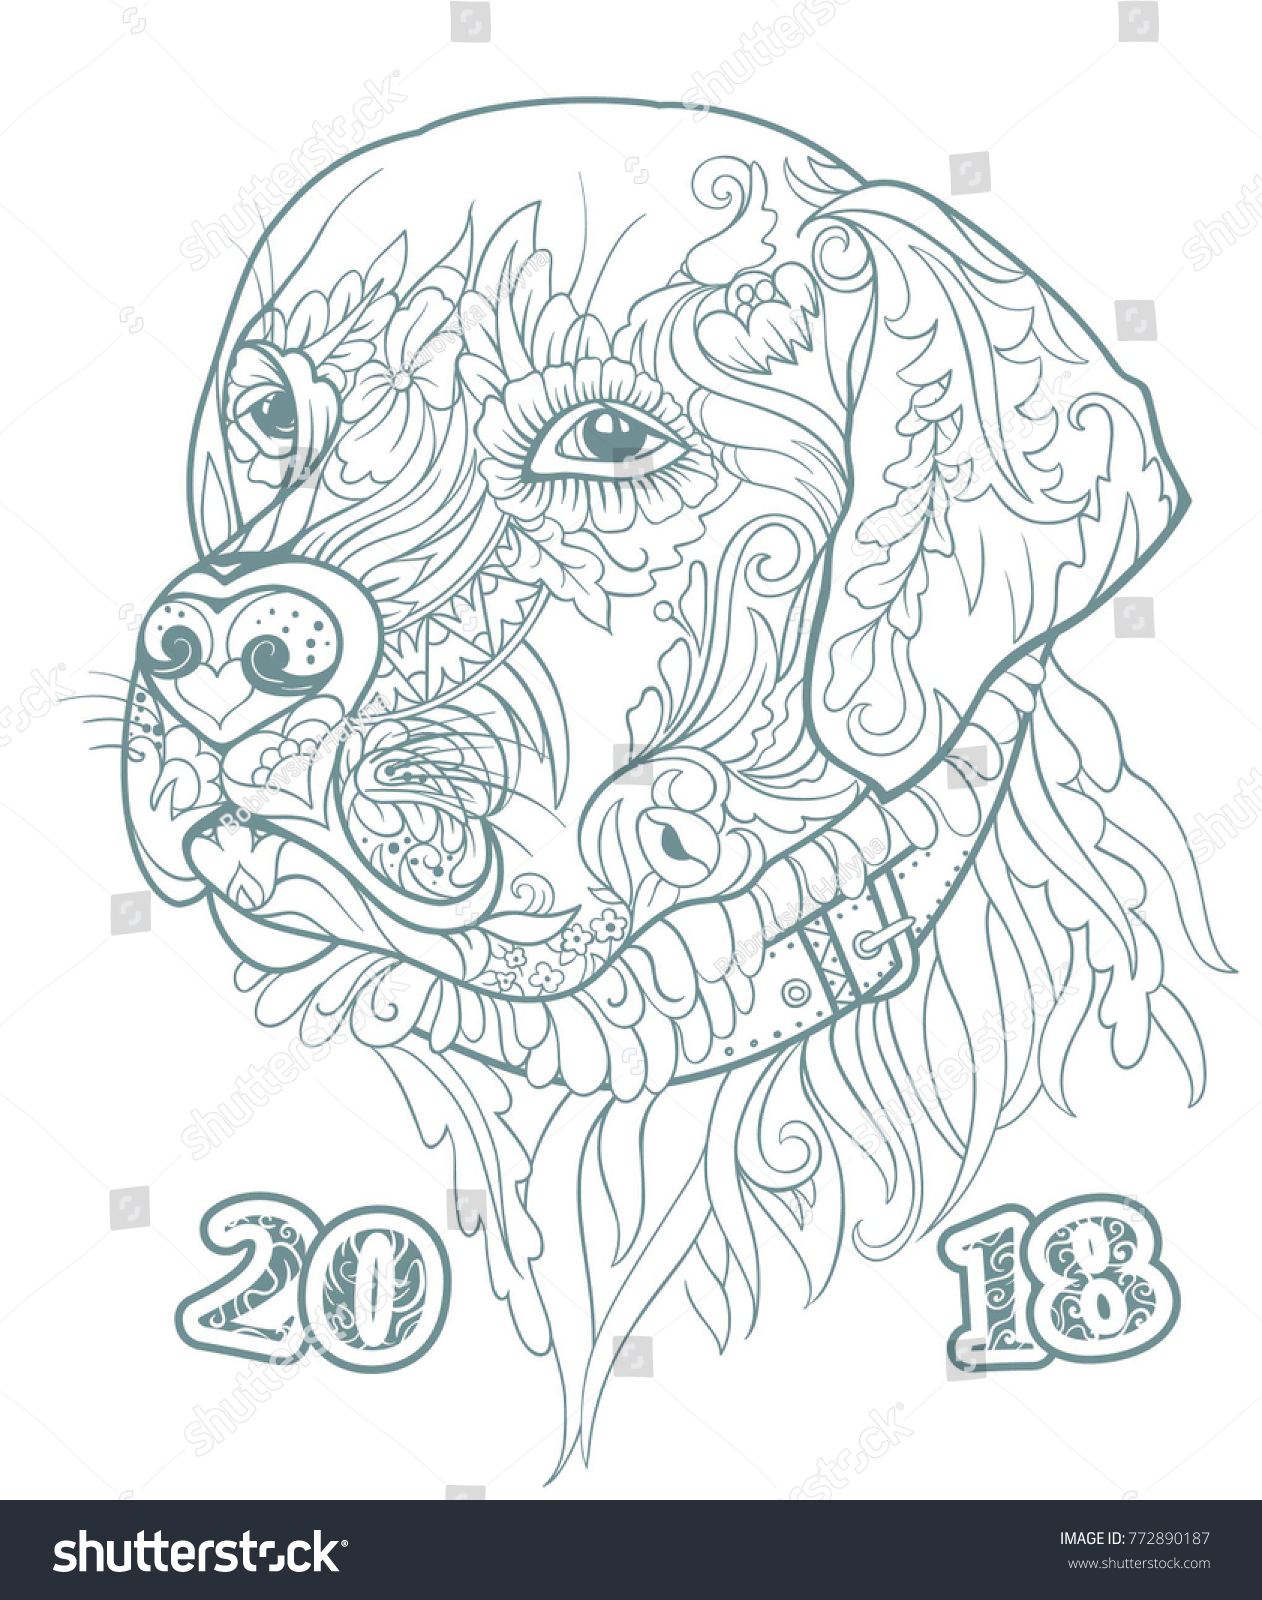 happy new year greeting card with zentangle cute dog hand drawn sketch for coloring page